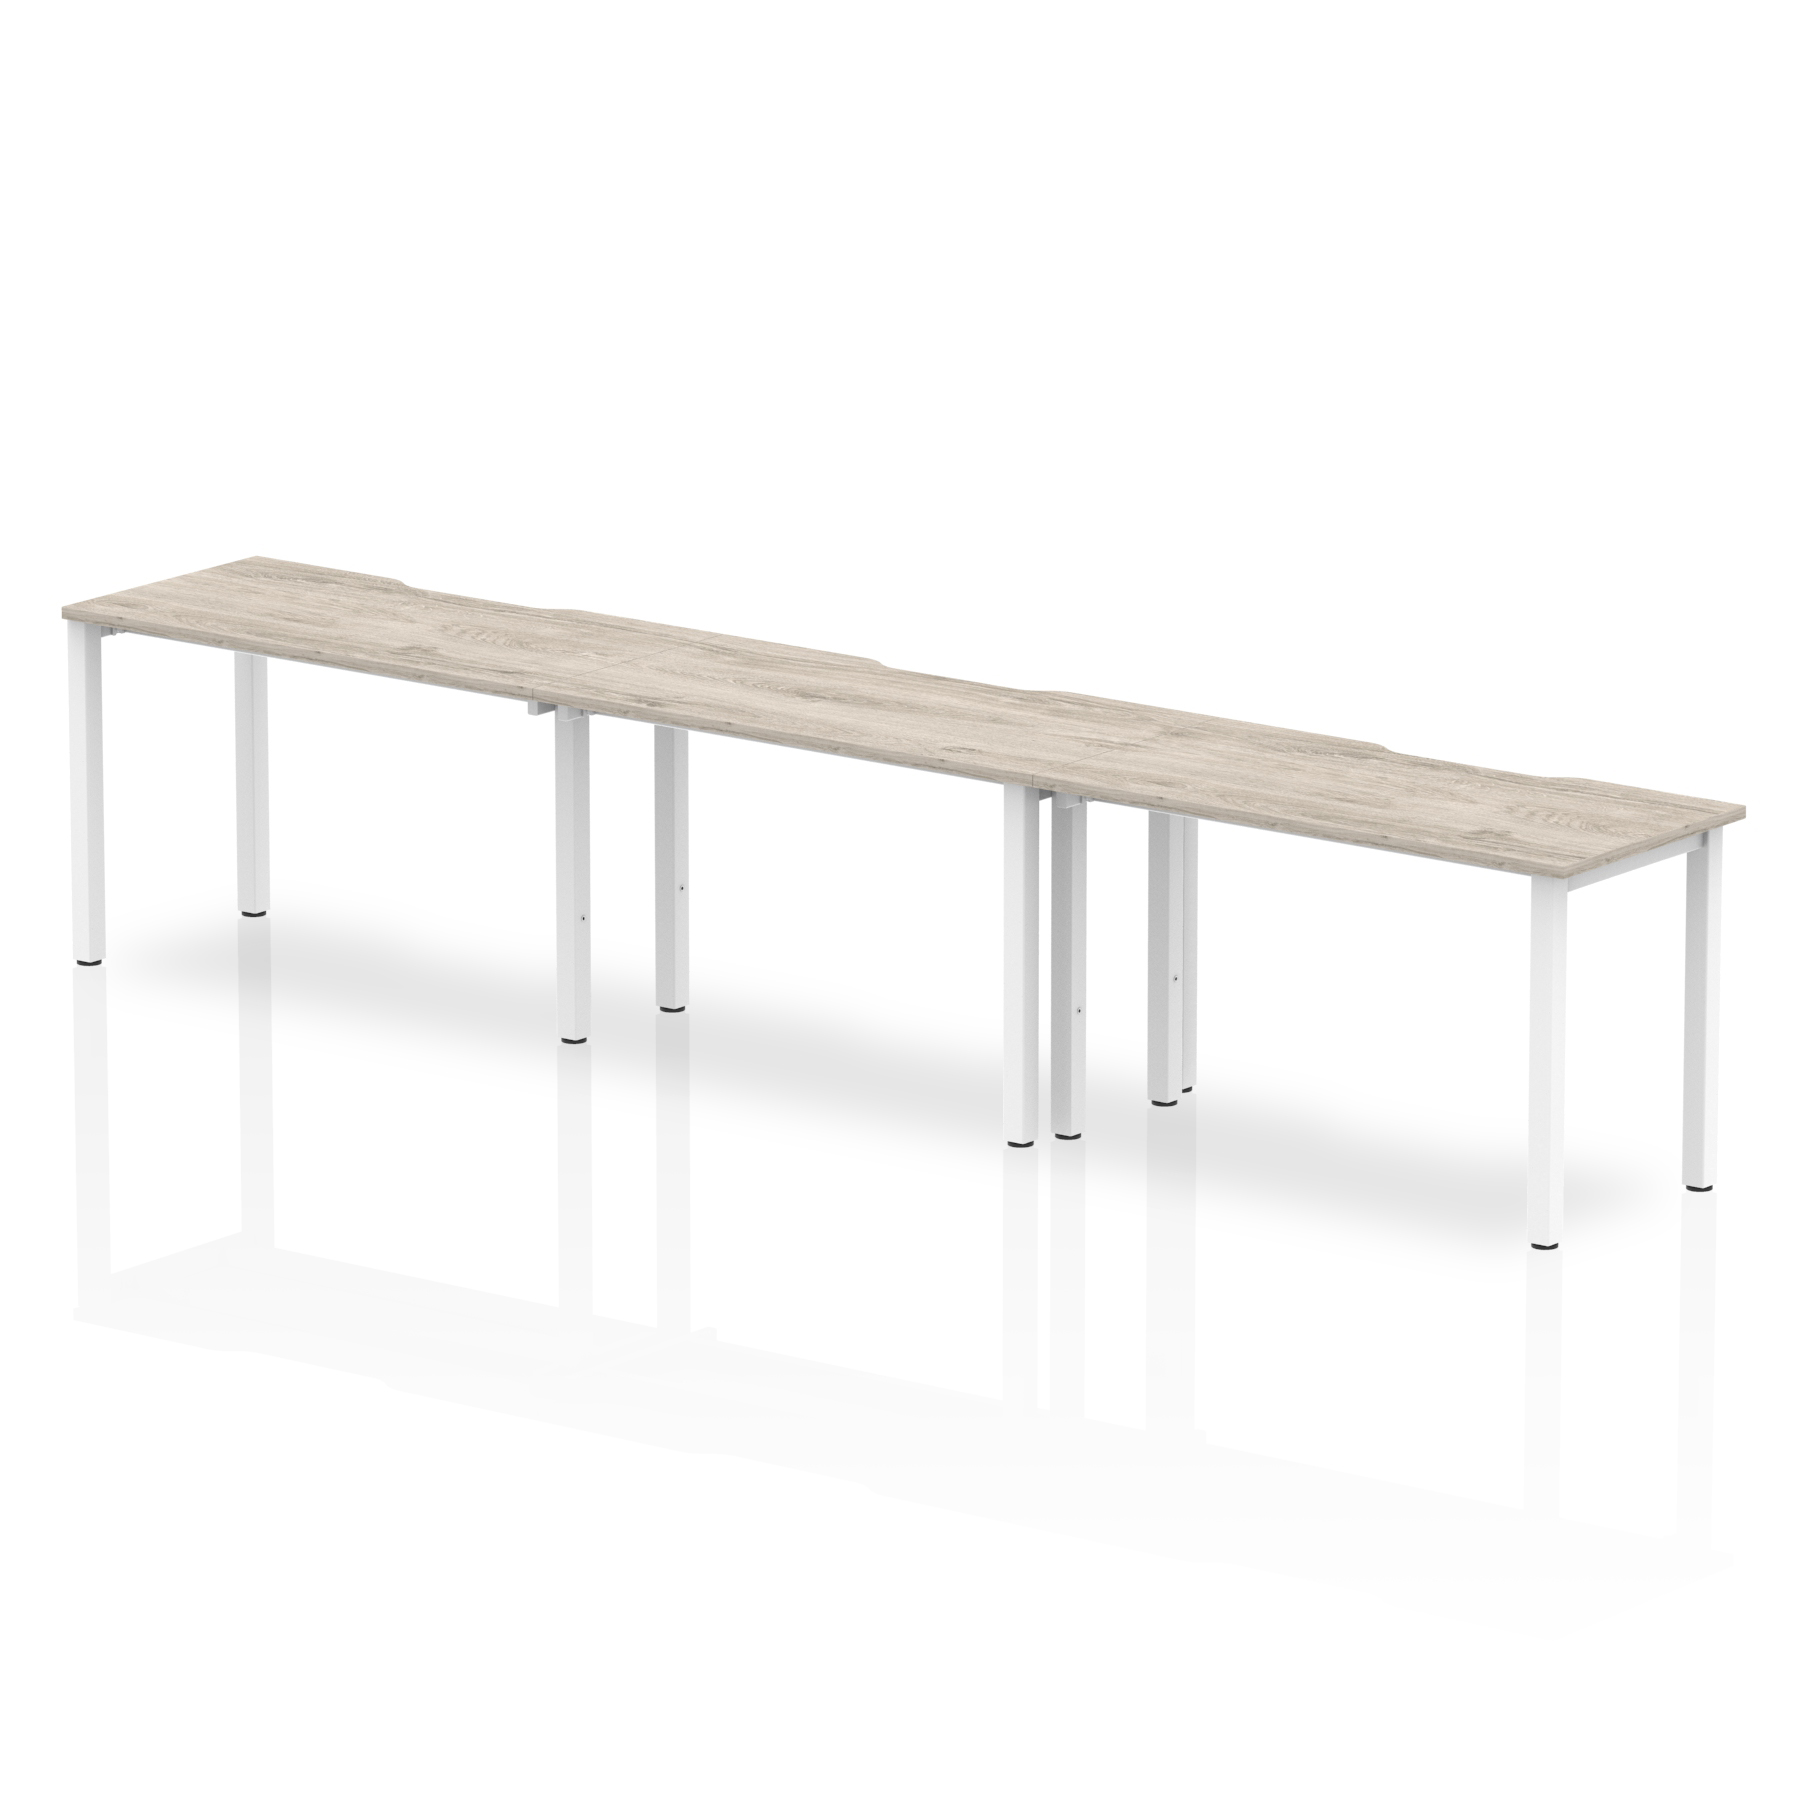 Desks Trexus Bench Desk 3 Person Side to Side Configuration White Leg 3600x800mm Grey Oak Ref BE772